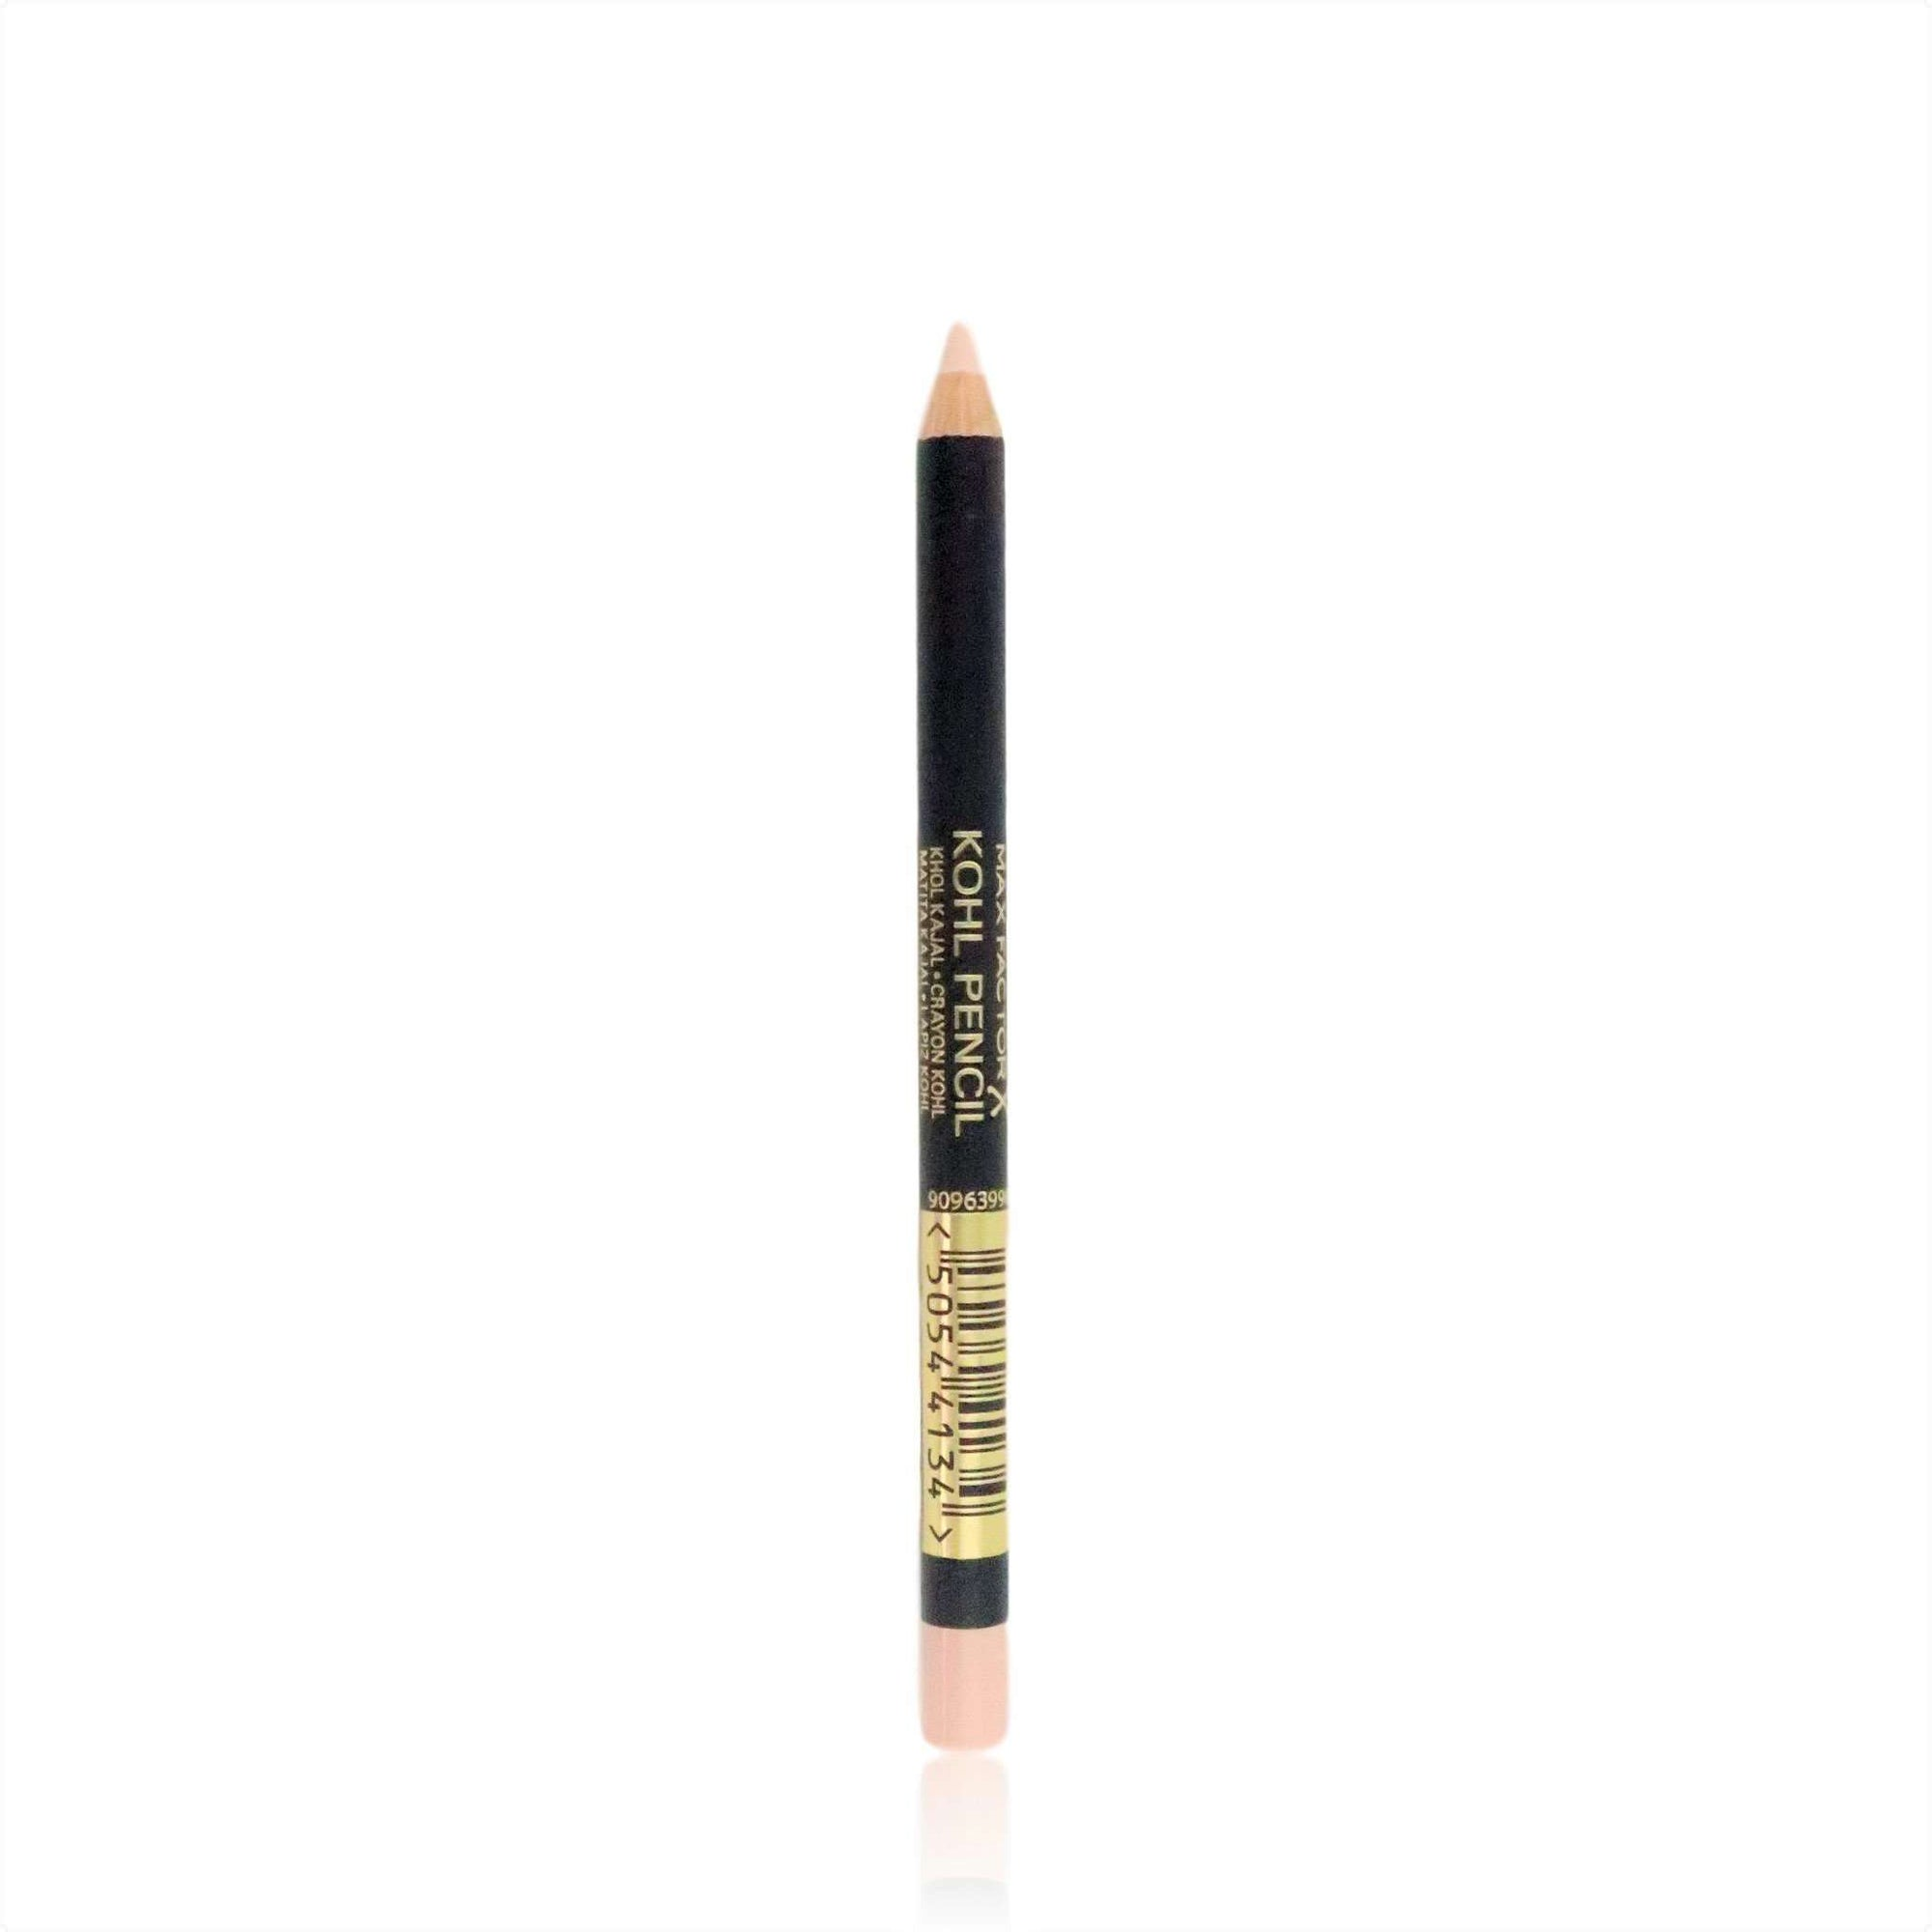 Max Factor Kohl Pencil Natural